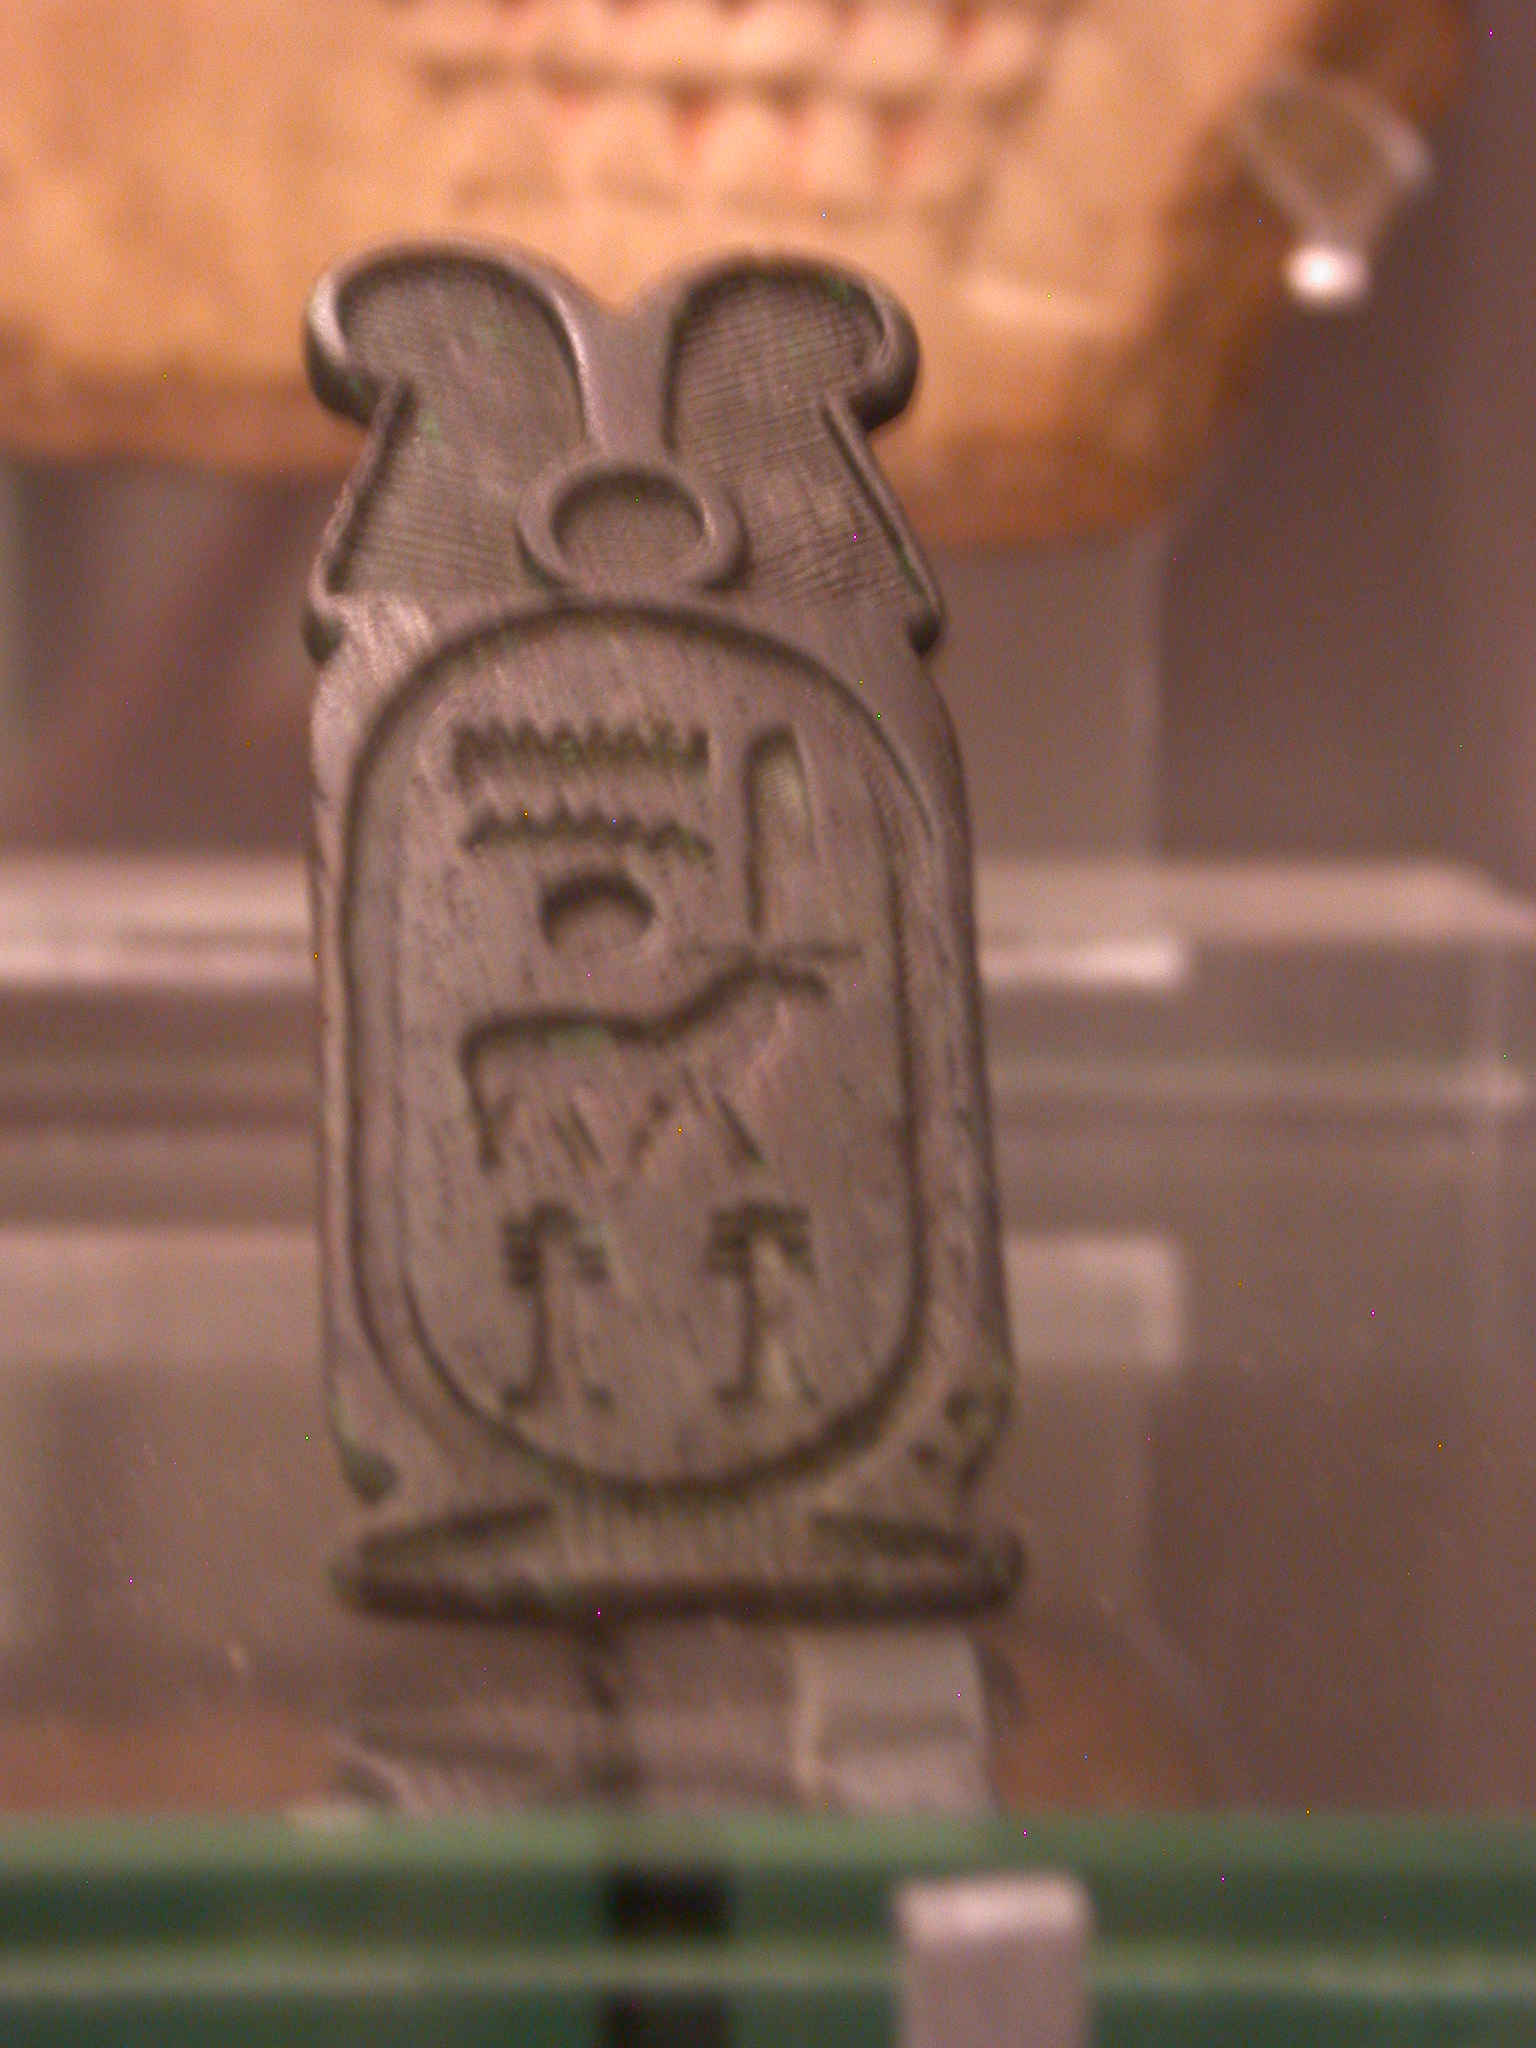 Ring With Cartouche of Smendes, Copper Alloy, 21st Dynasty, 1070-1044 BCE, Egypt, Fitzwilliam Museum, Cambridge, England